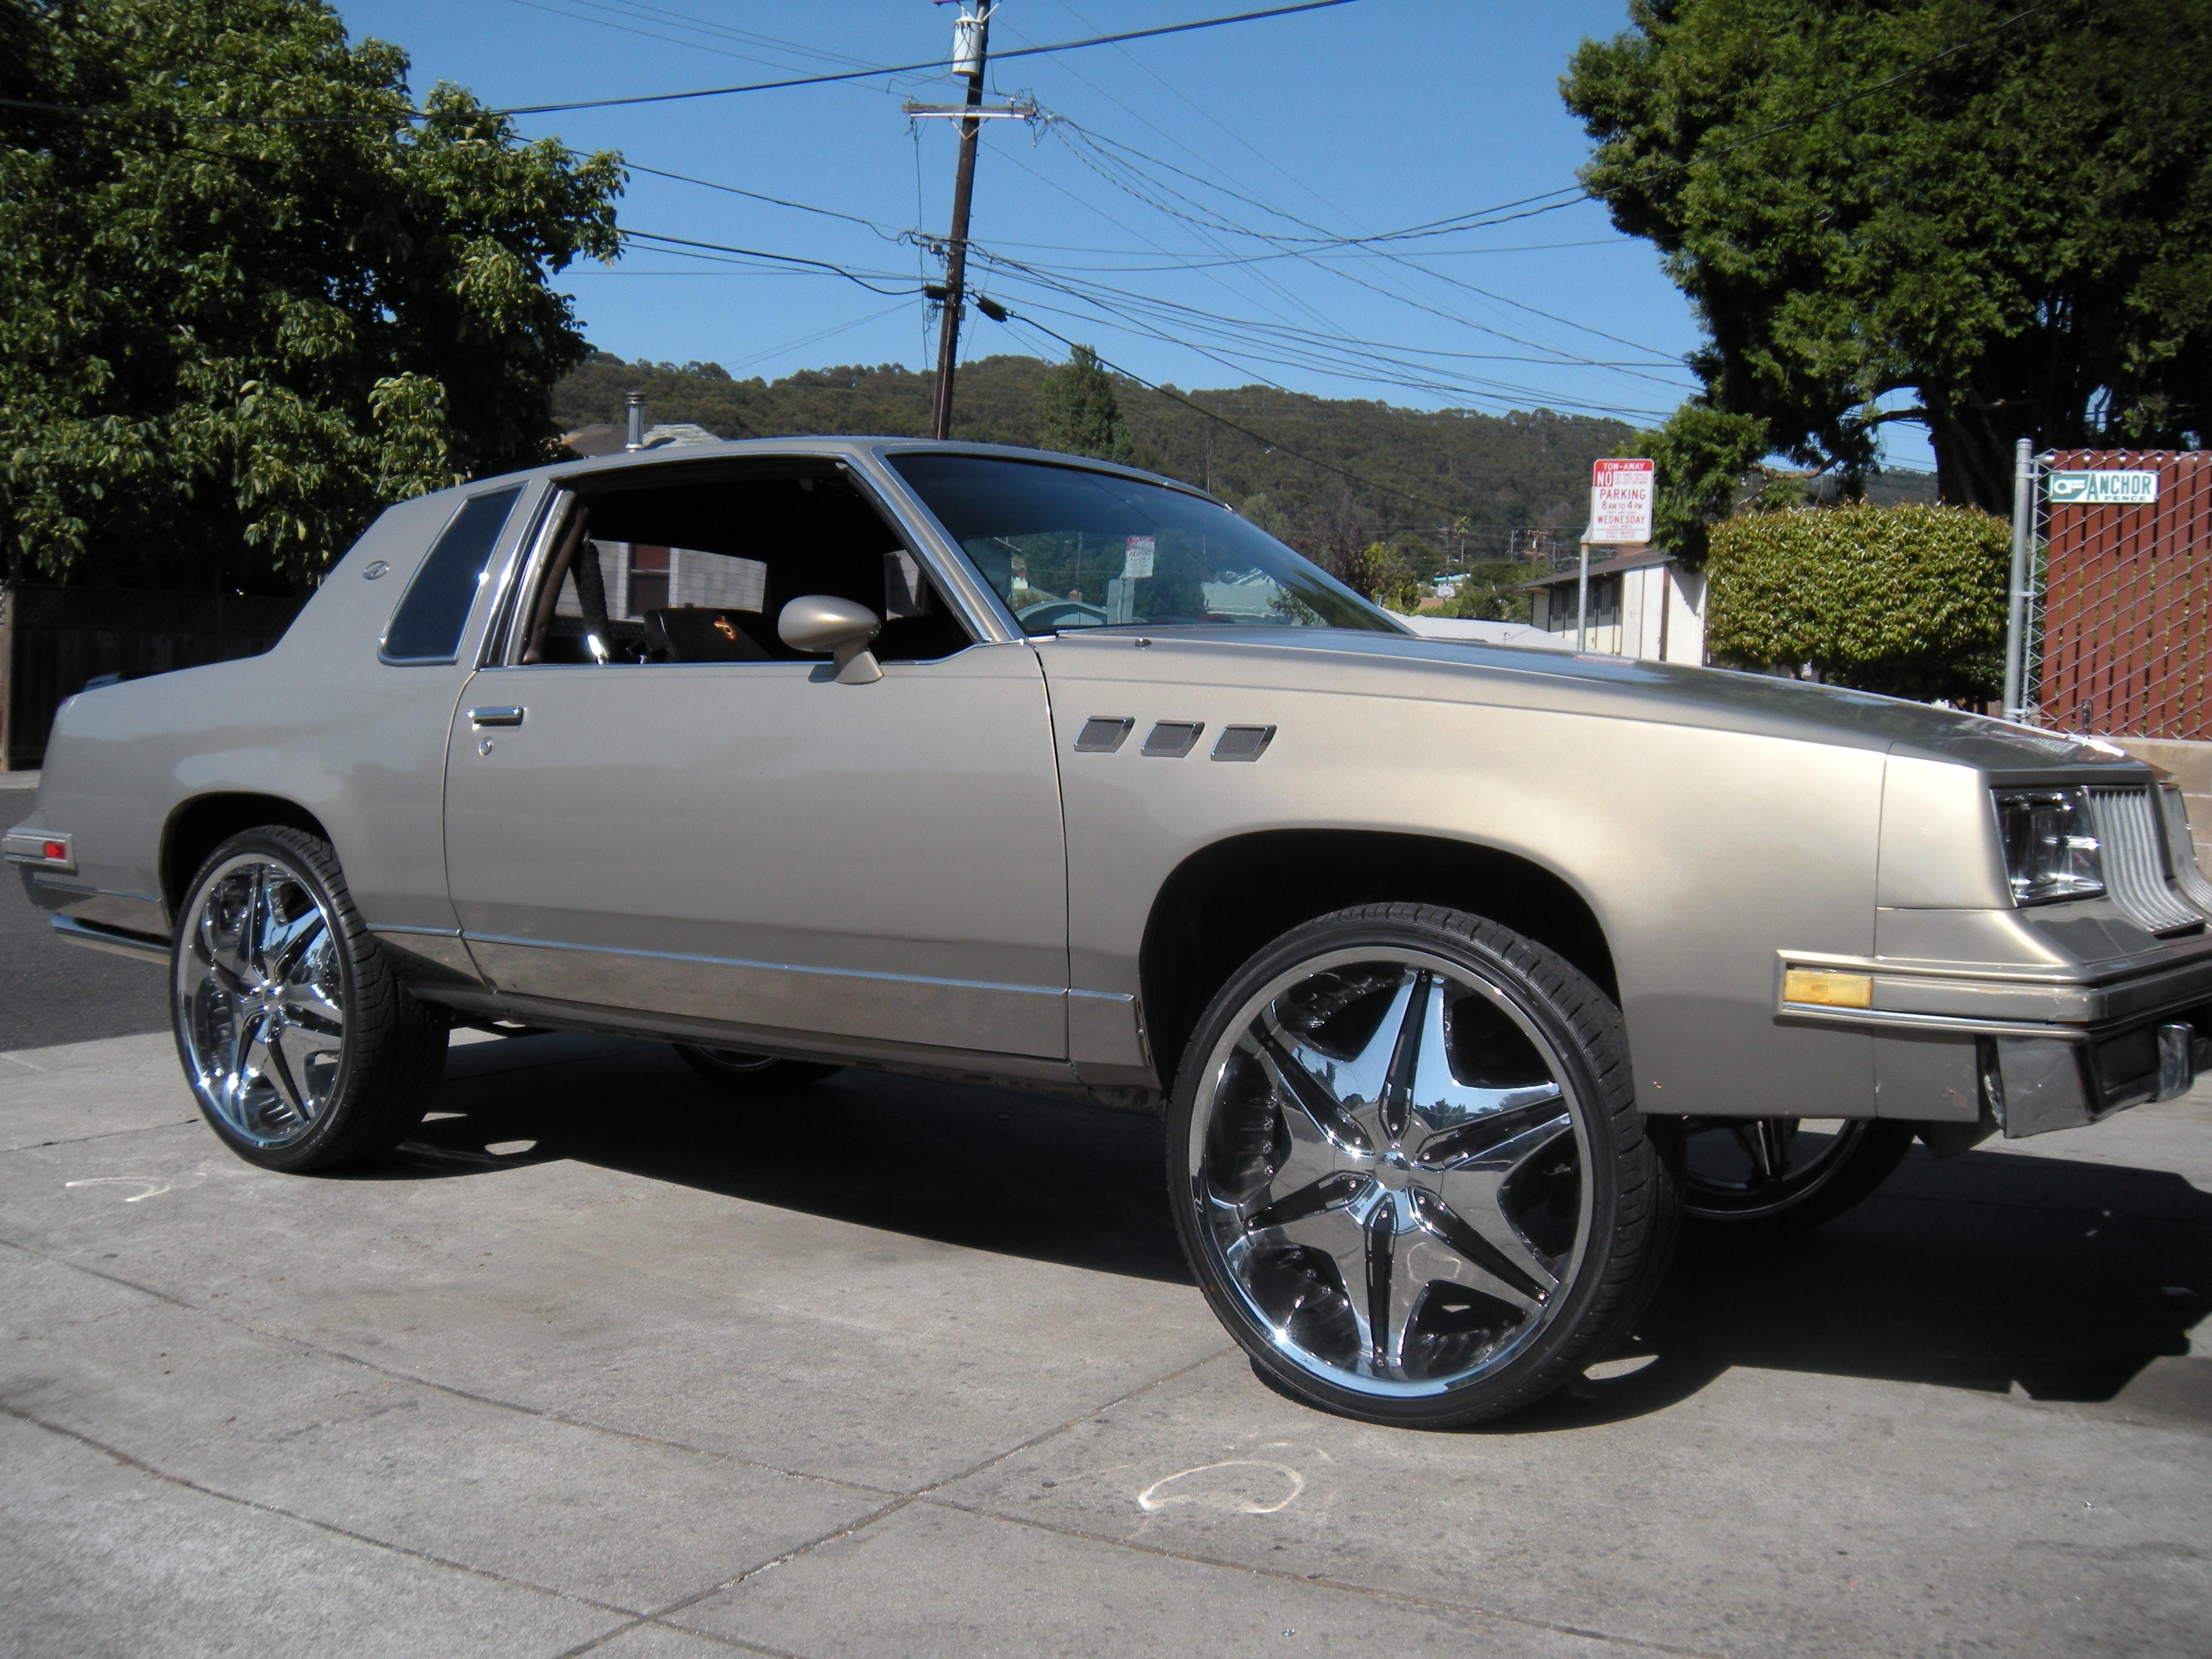 Youngdeezy's 1983 Oldsmobile Cutlass Supreme